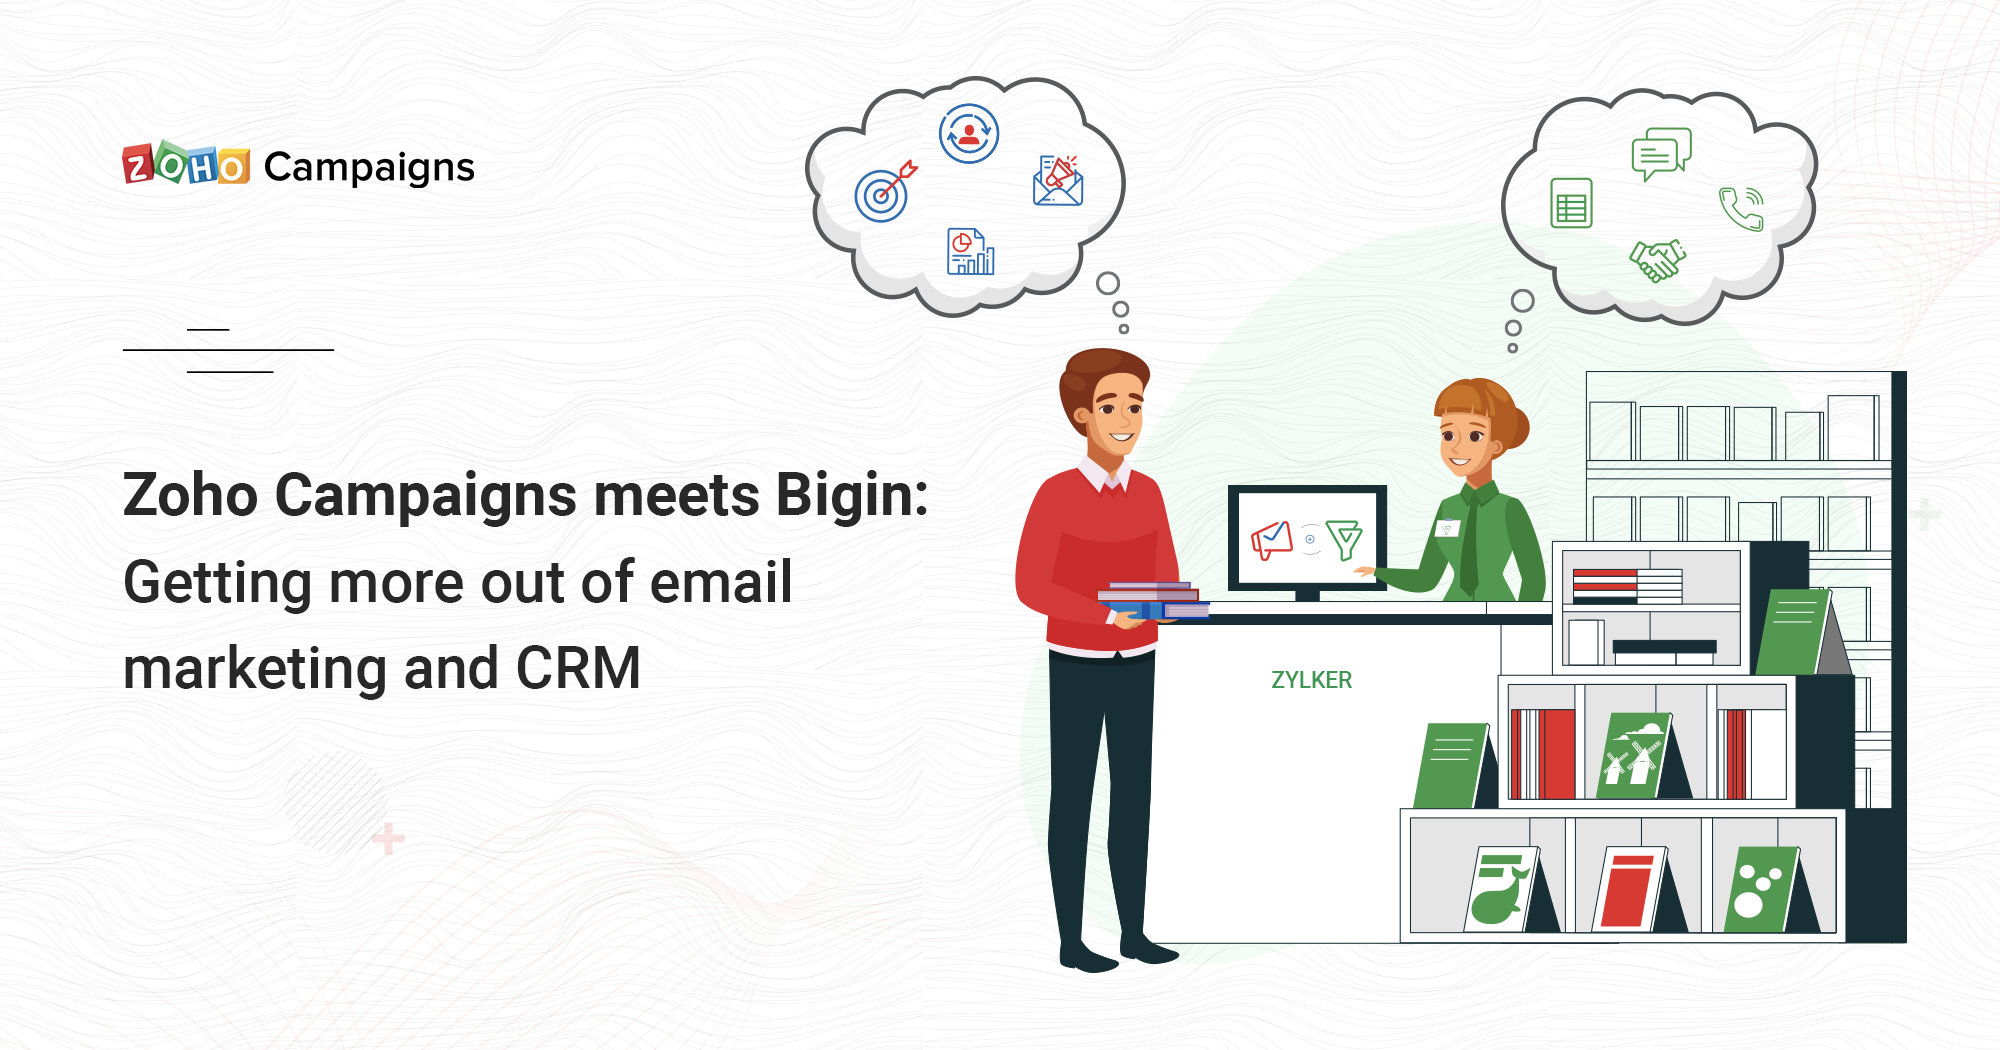 Zoho Campaigns meets Bigin: Getting more out of email marketing and CRM